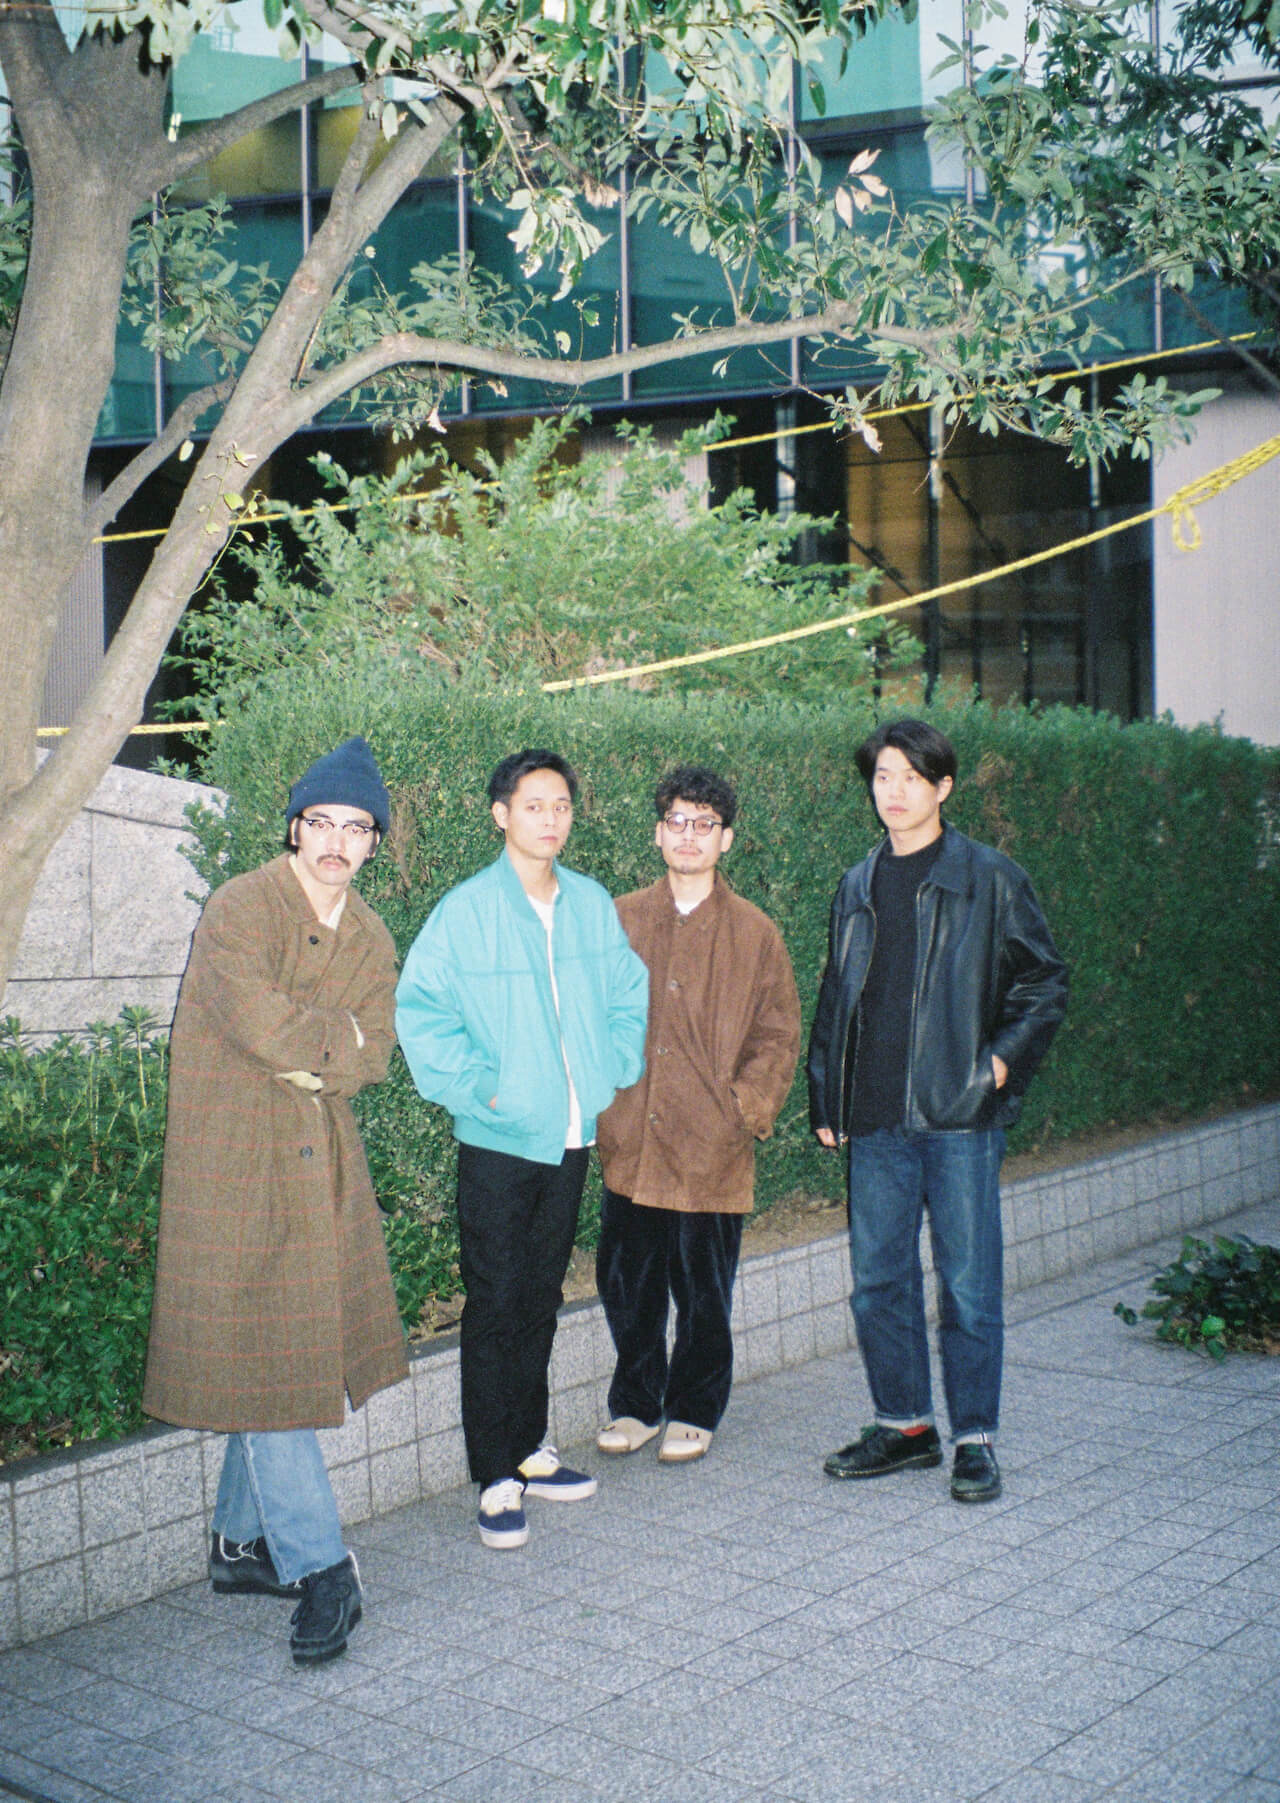 Yogee New Wavesが『to the MOON e.p.』に込めた想いと国境を超えた先にあるもの interview-yogee-64